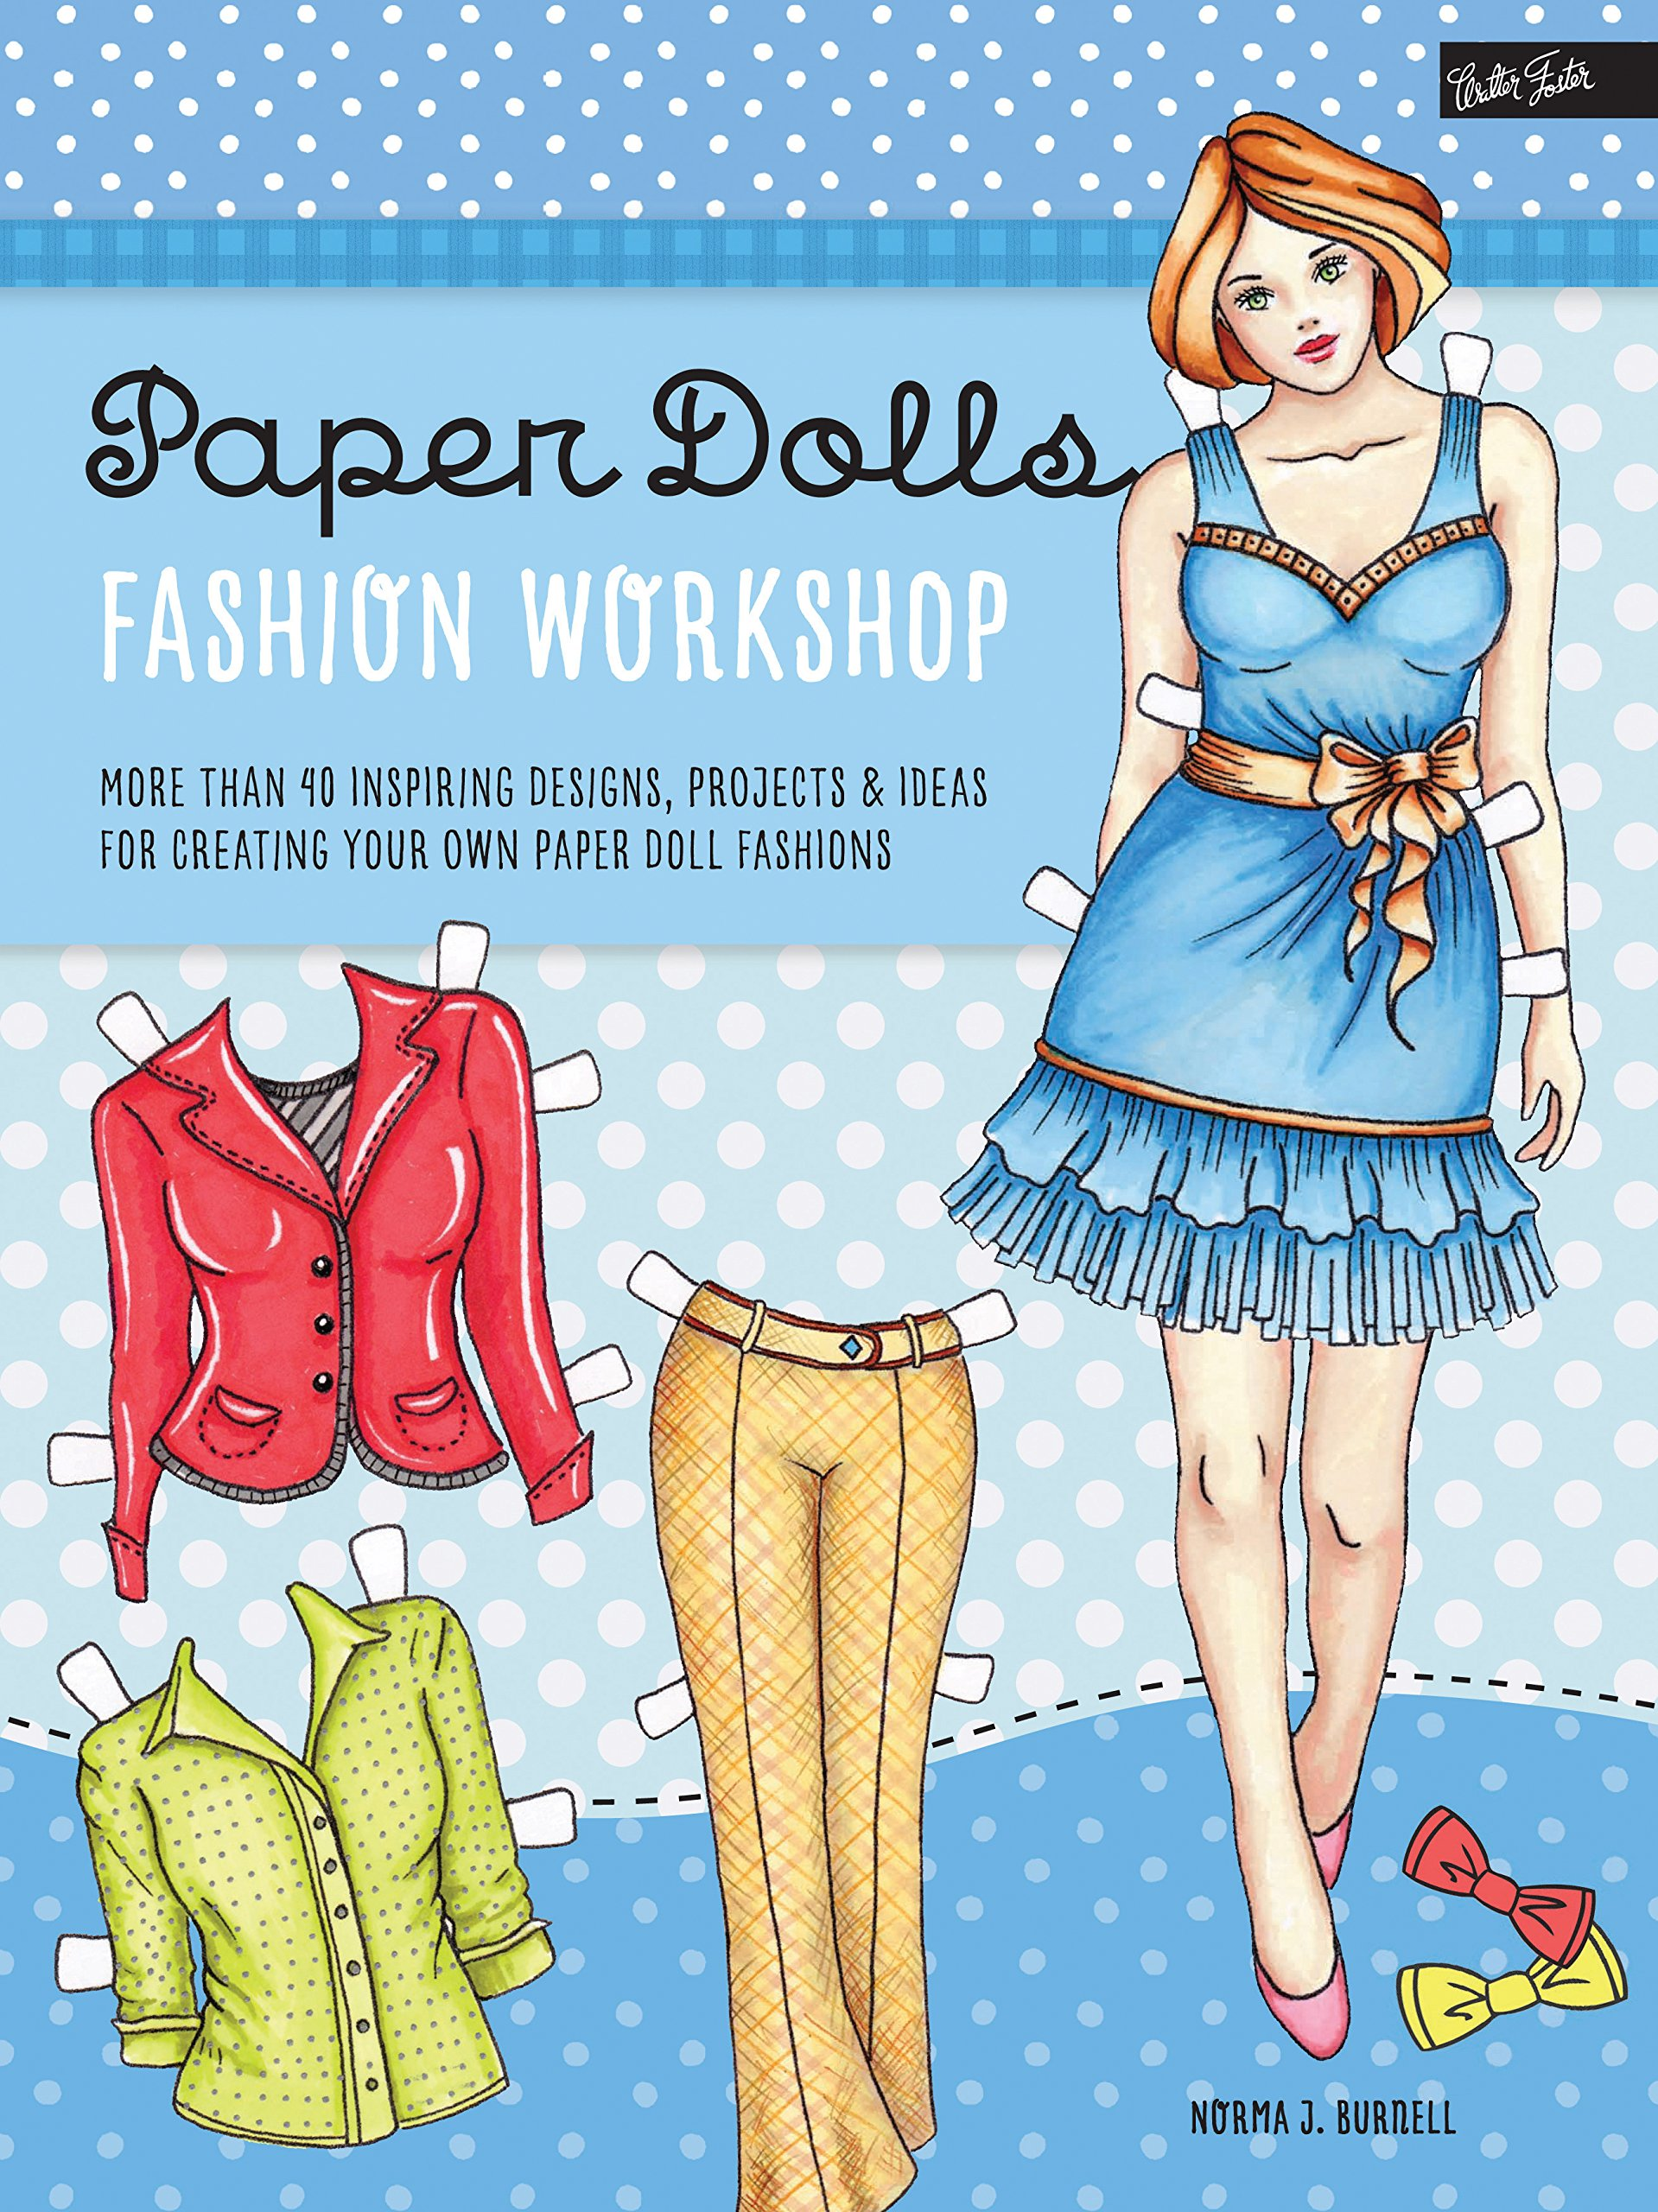 de475df4f7f Paper Dolls Fashion Workshop: More than 40 inspiring designs, projects &  ideas for creating your own paper doll fashions (Walter Foster Studio)  Paperback ...